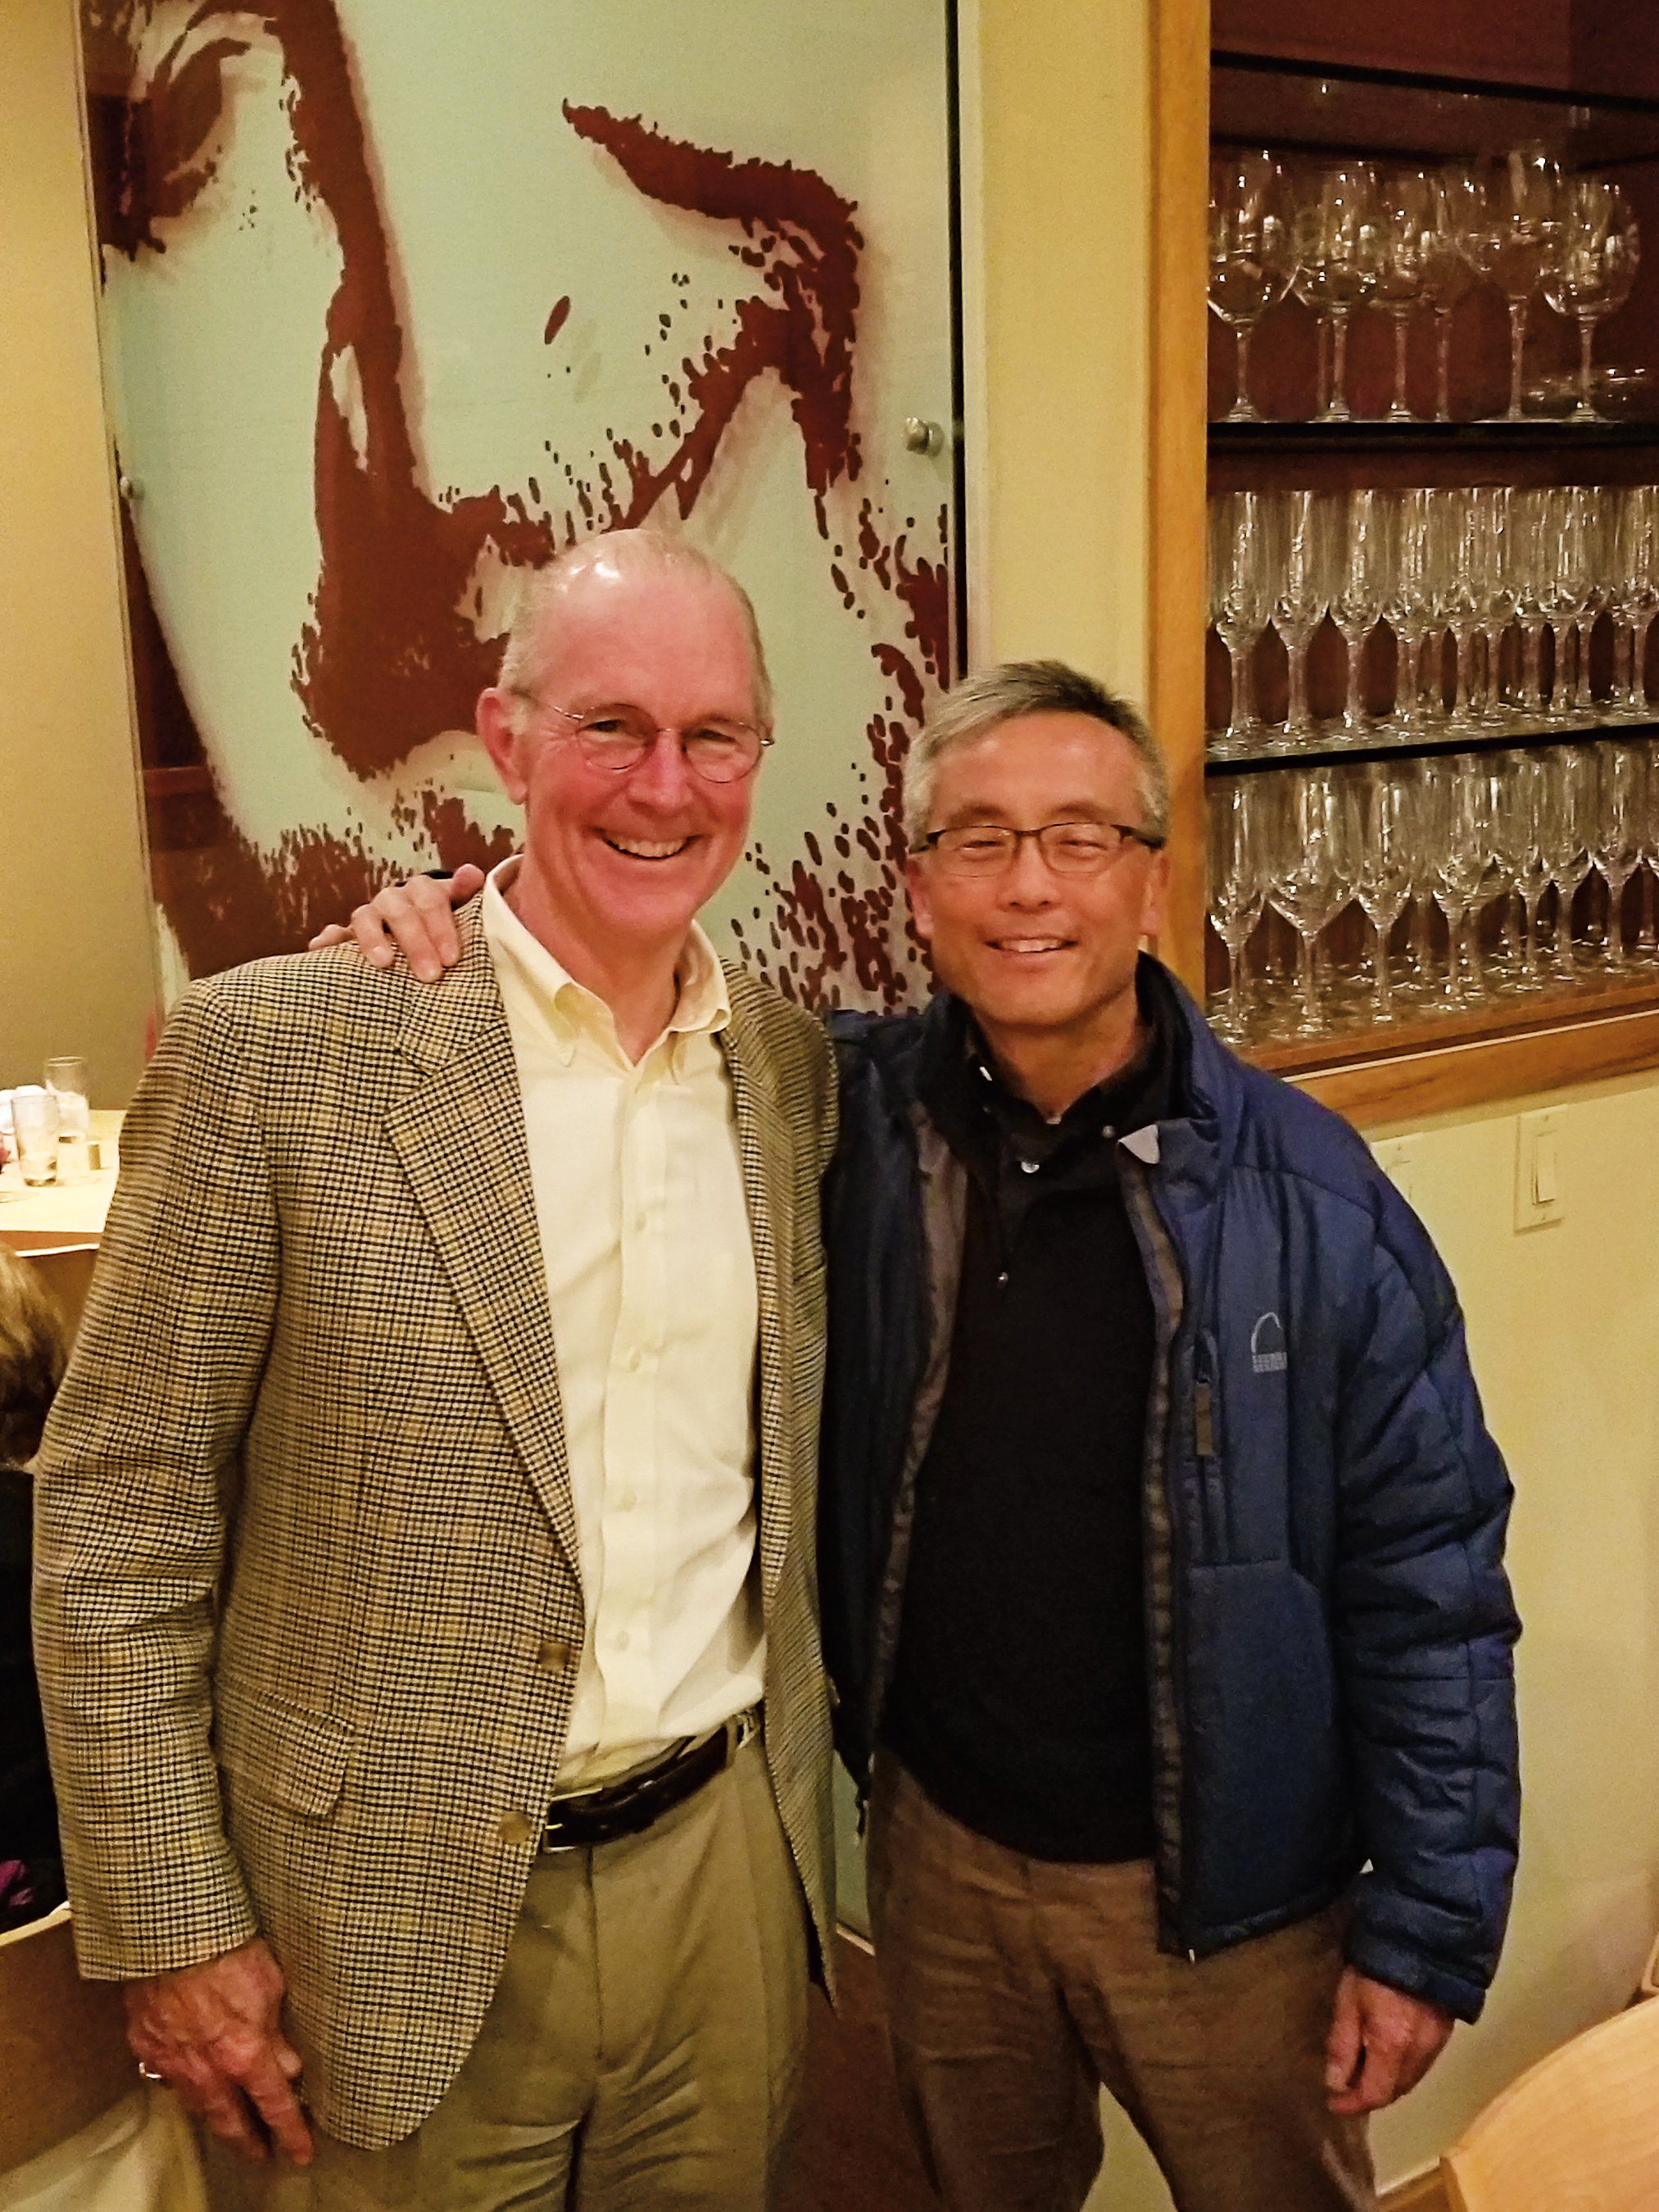 Ned Welbourn '74 (l.) and Bruce Chan '74 dined together in Washington, D.C.